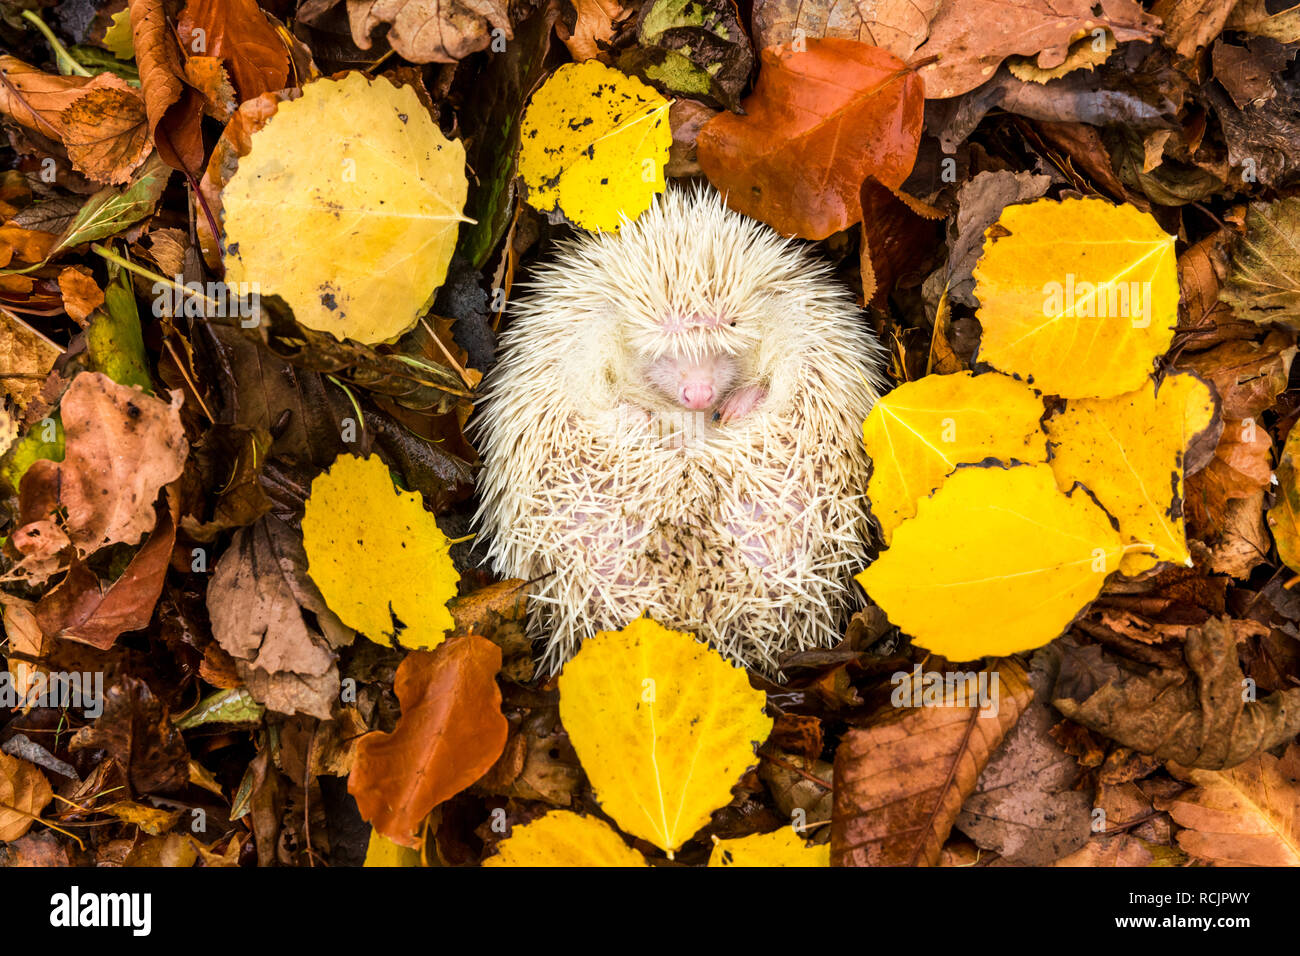 Hedgehog, (Erinaceus Europaeus) wild, native, white, pure Albino hedgehog with pink nose, hibernating in yellow Autumn or Fall leaves. Landscape - Stock Image